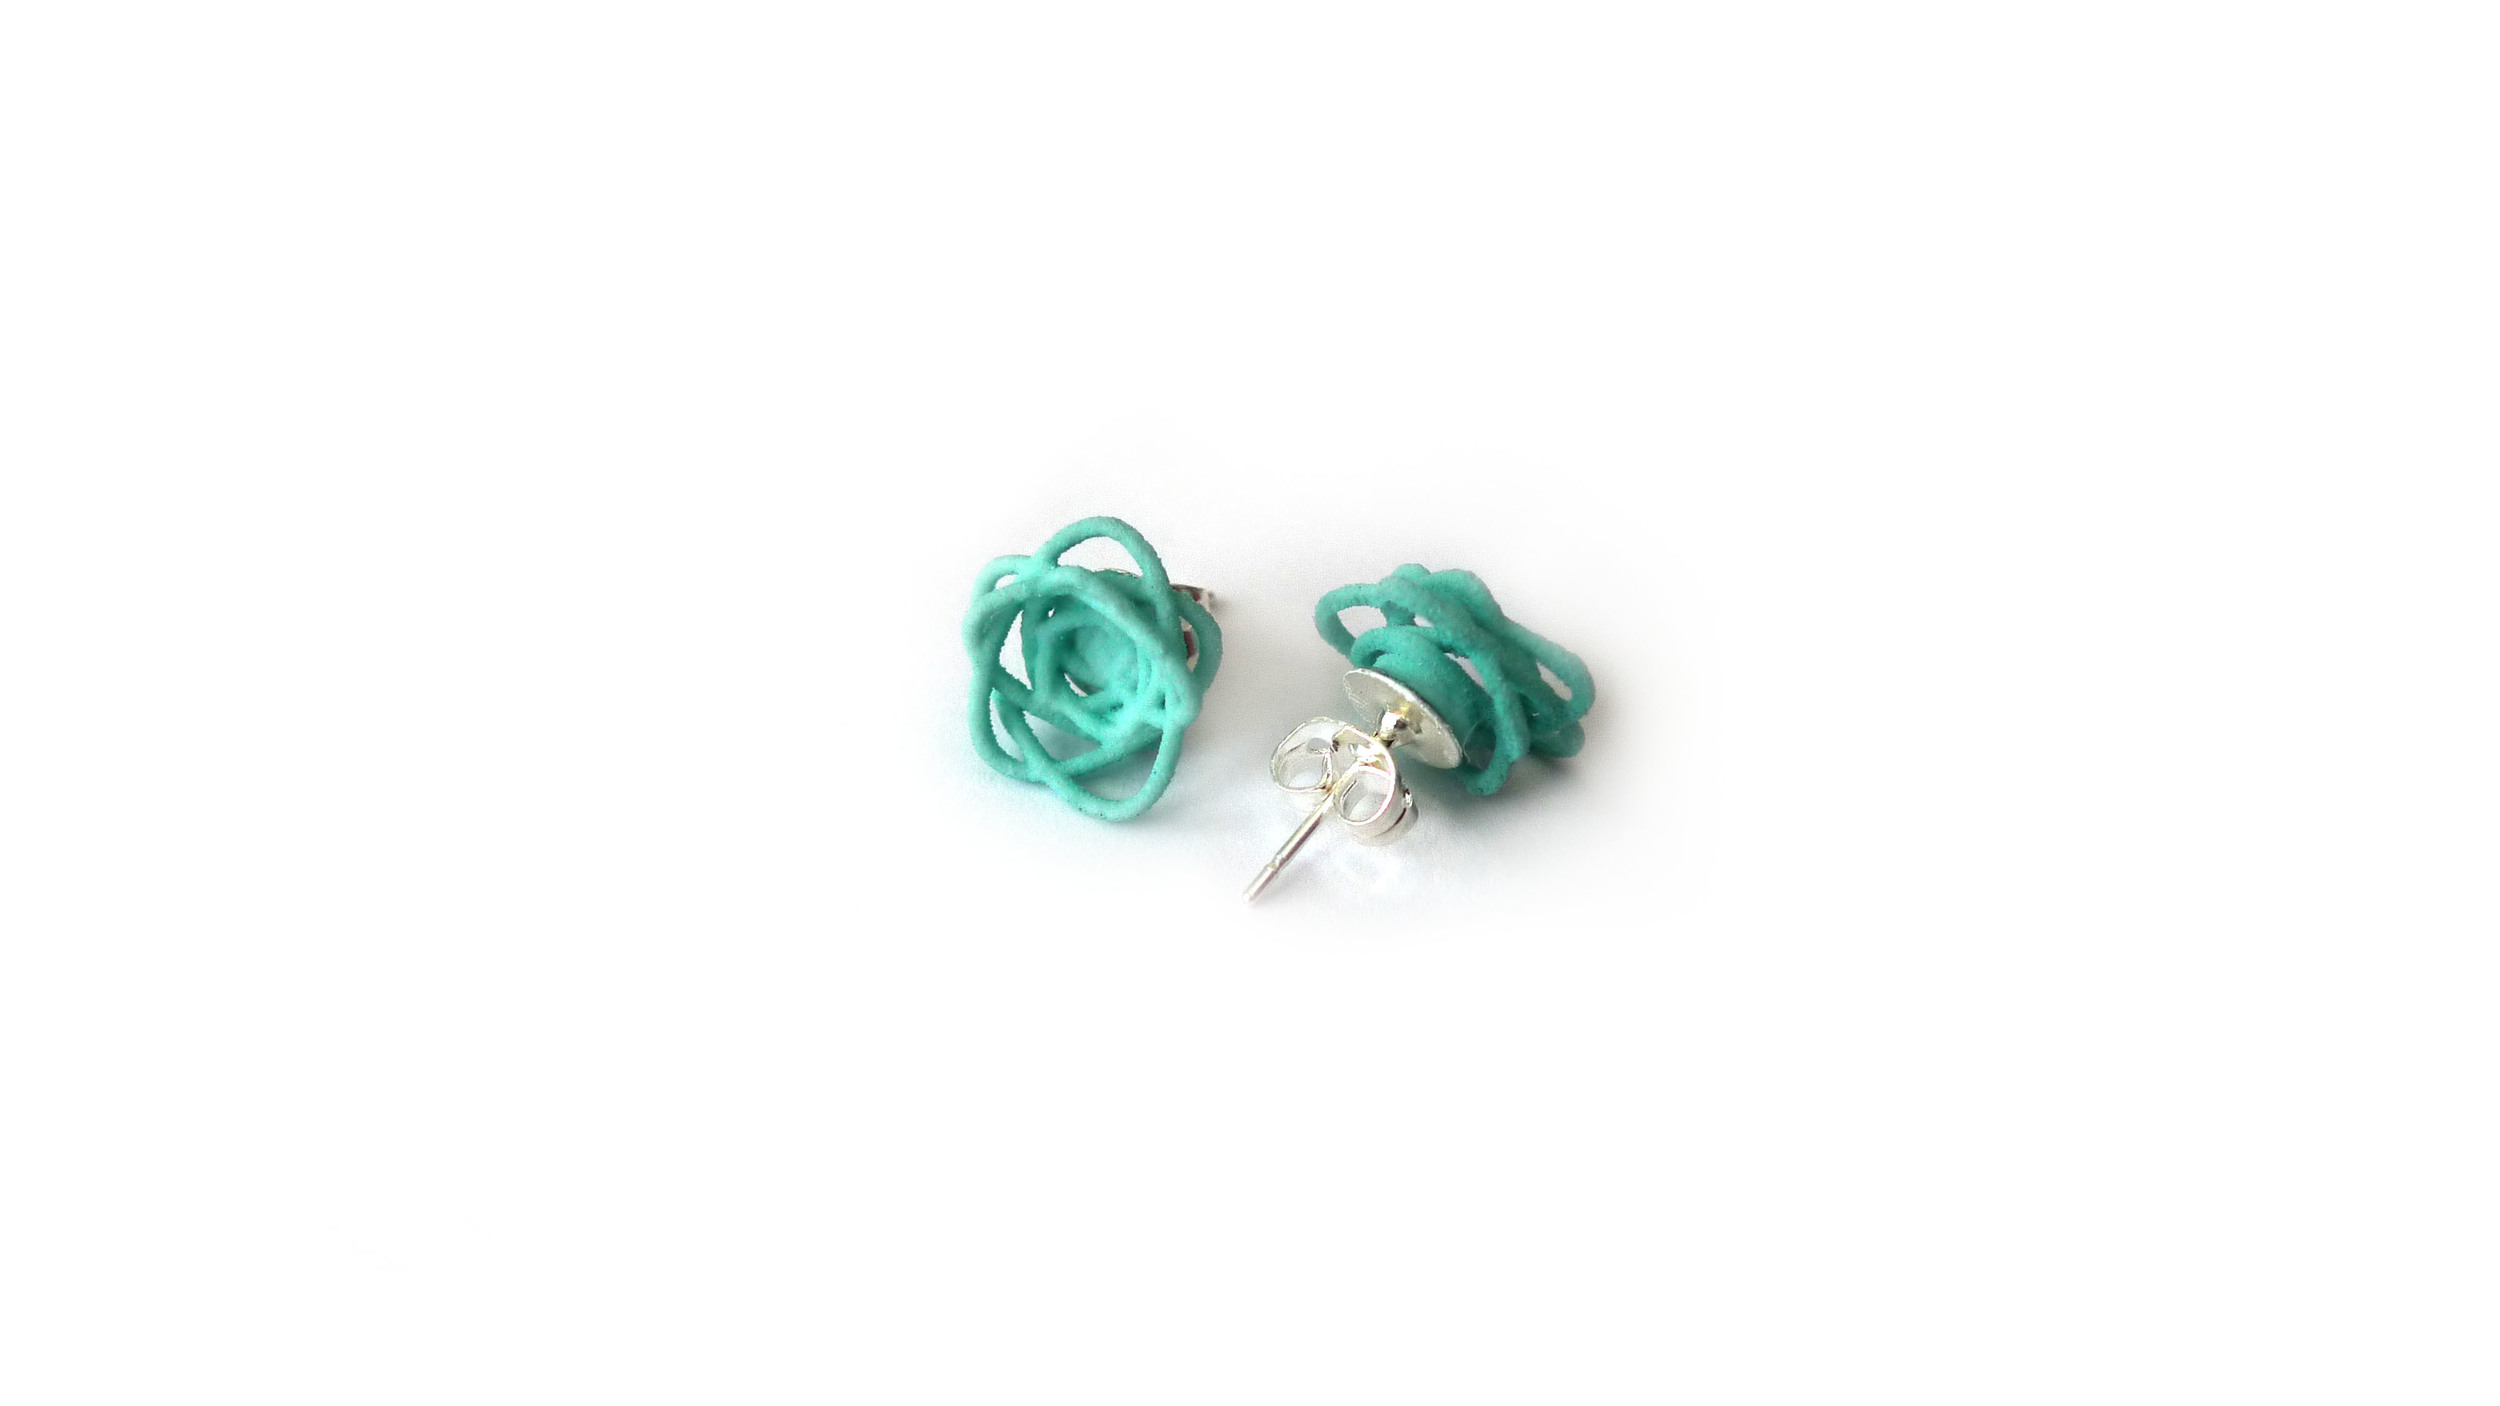 Sprouted Spirals Earrings (Mini Studs)   3450: In Nylon $9  3495: In Steel $44